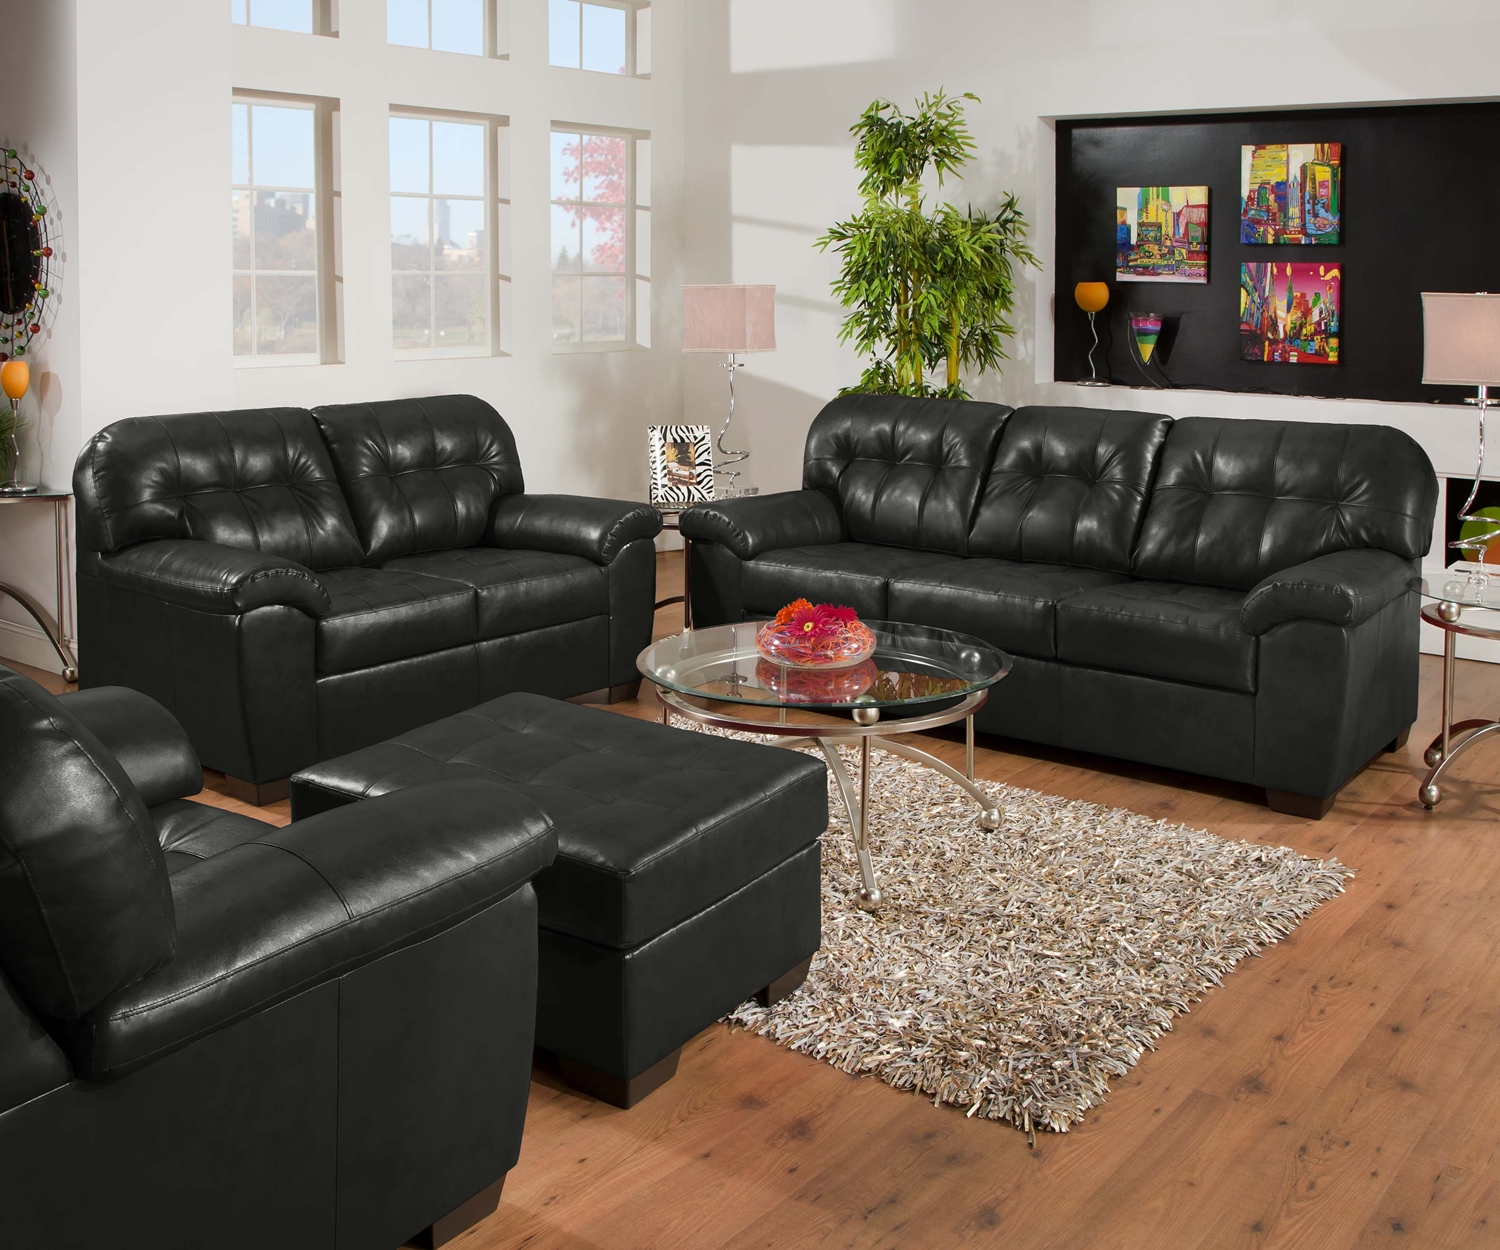 beautiful black leather living room furniture sets living ro